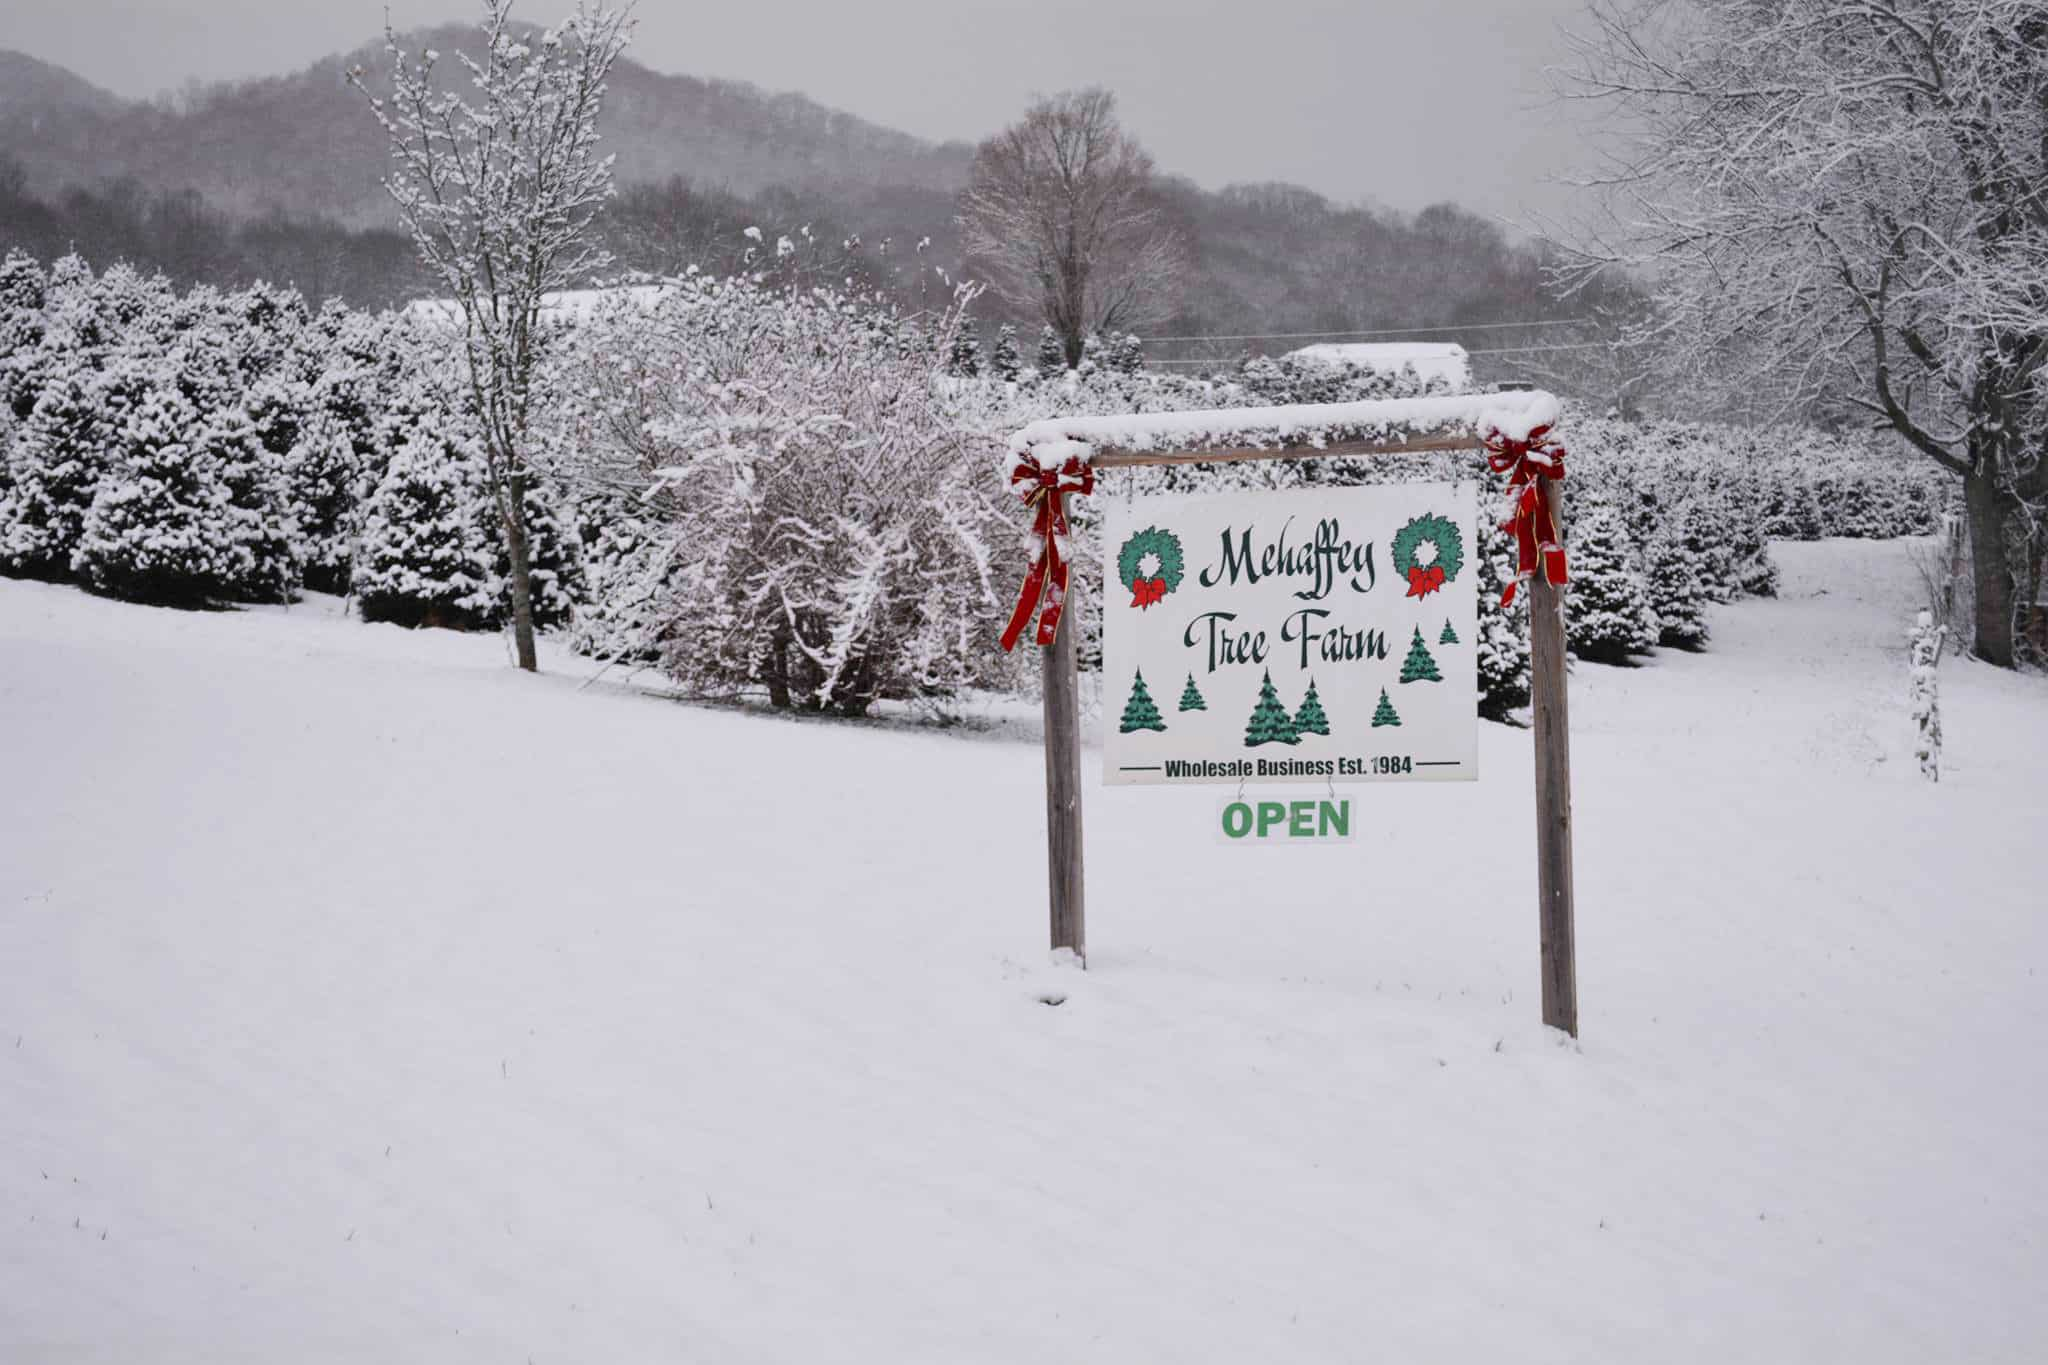 Mehaffey Tree Farm in the snow